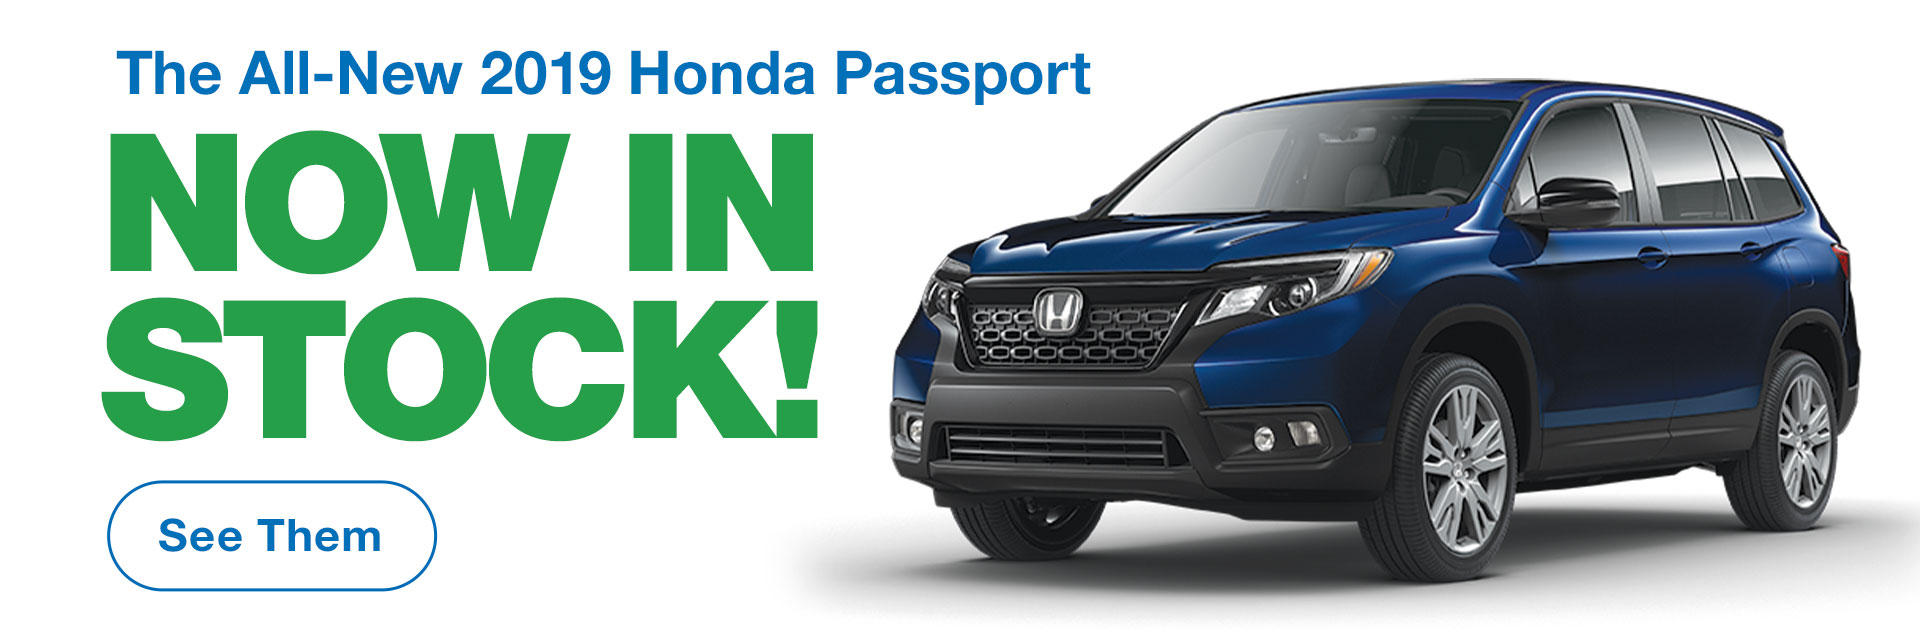 The All-New 2019 Honda Passport Now In Stock!